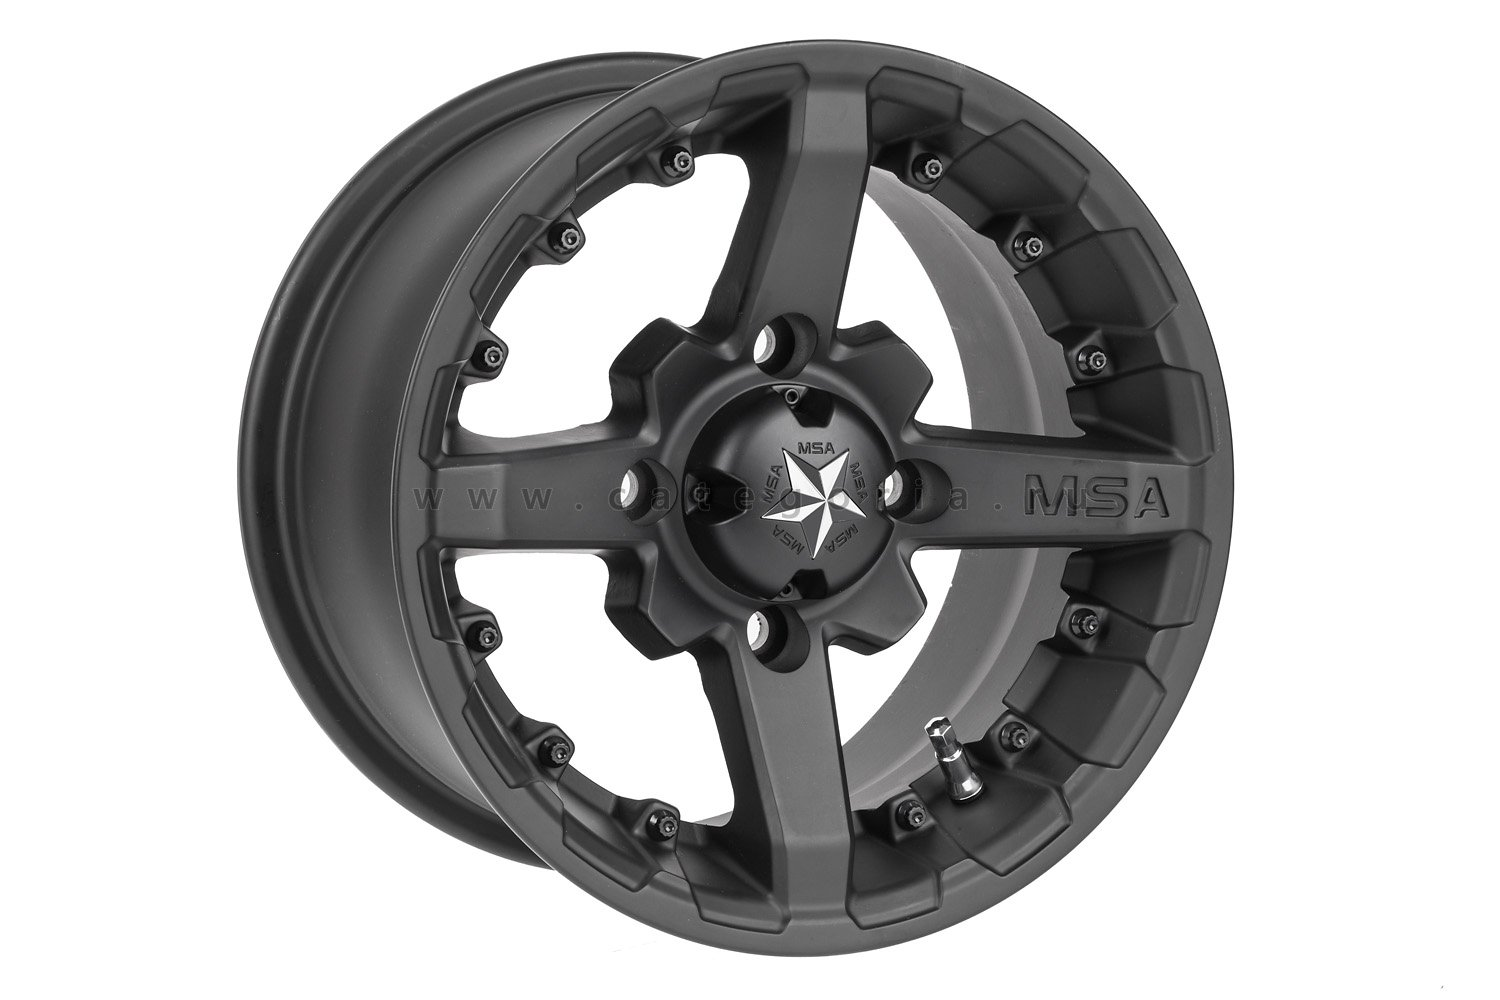 MSA M23 R14x7, 4x110, +10 mm, Battle (Flat Black) - диск колесный